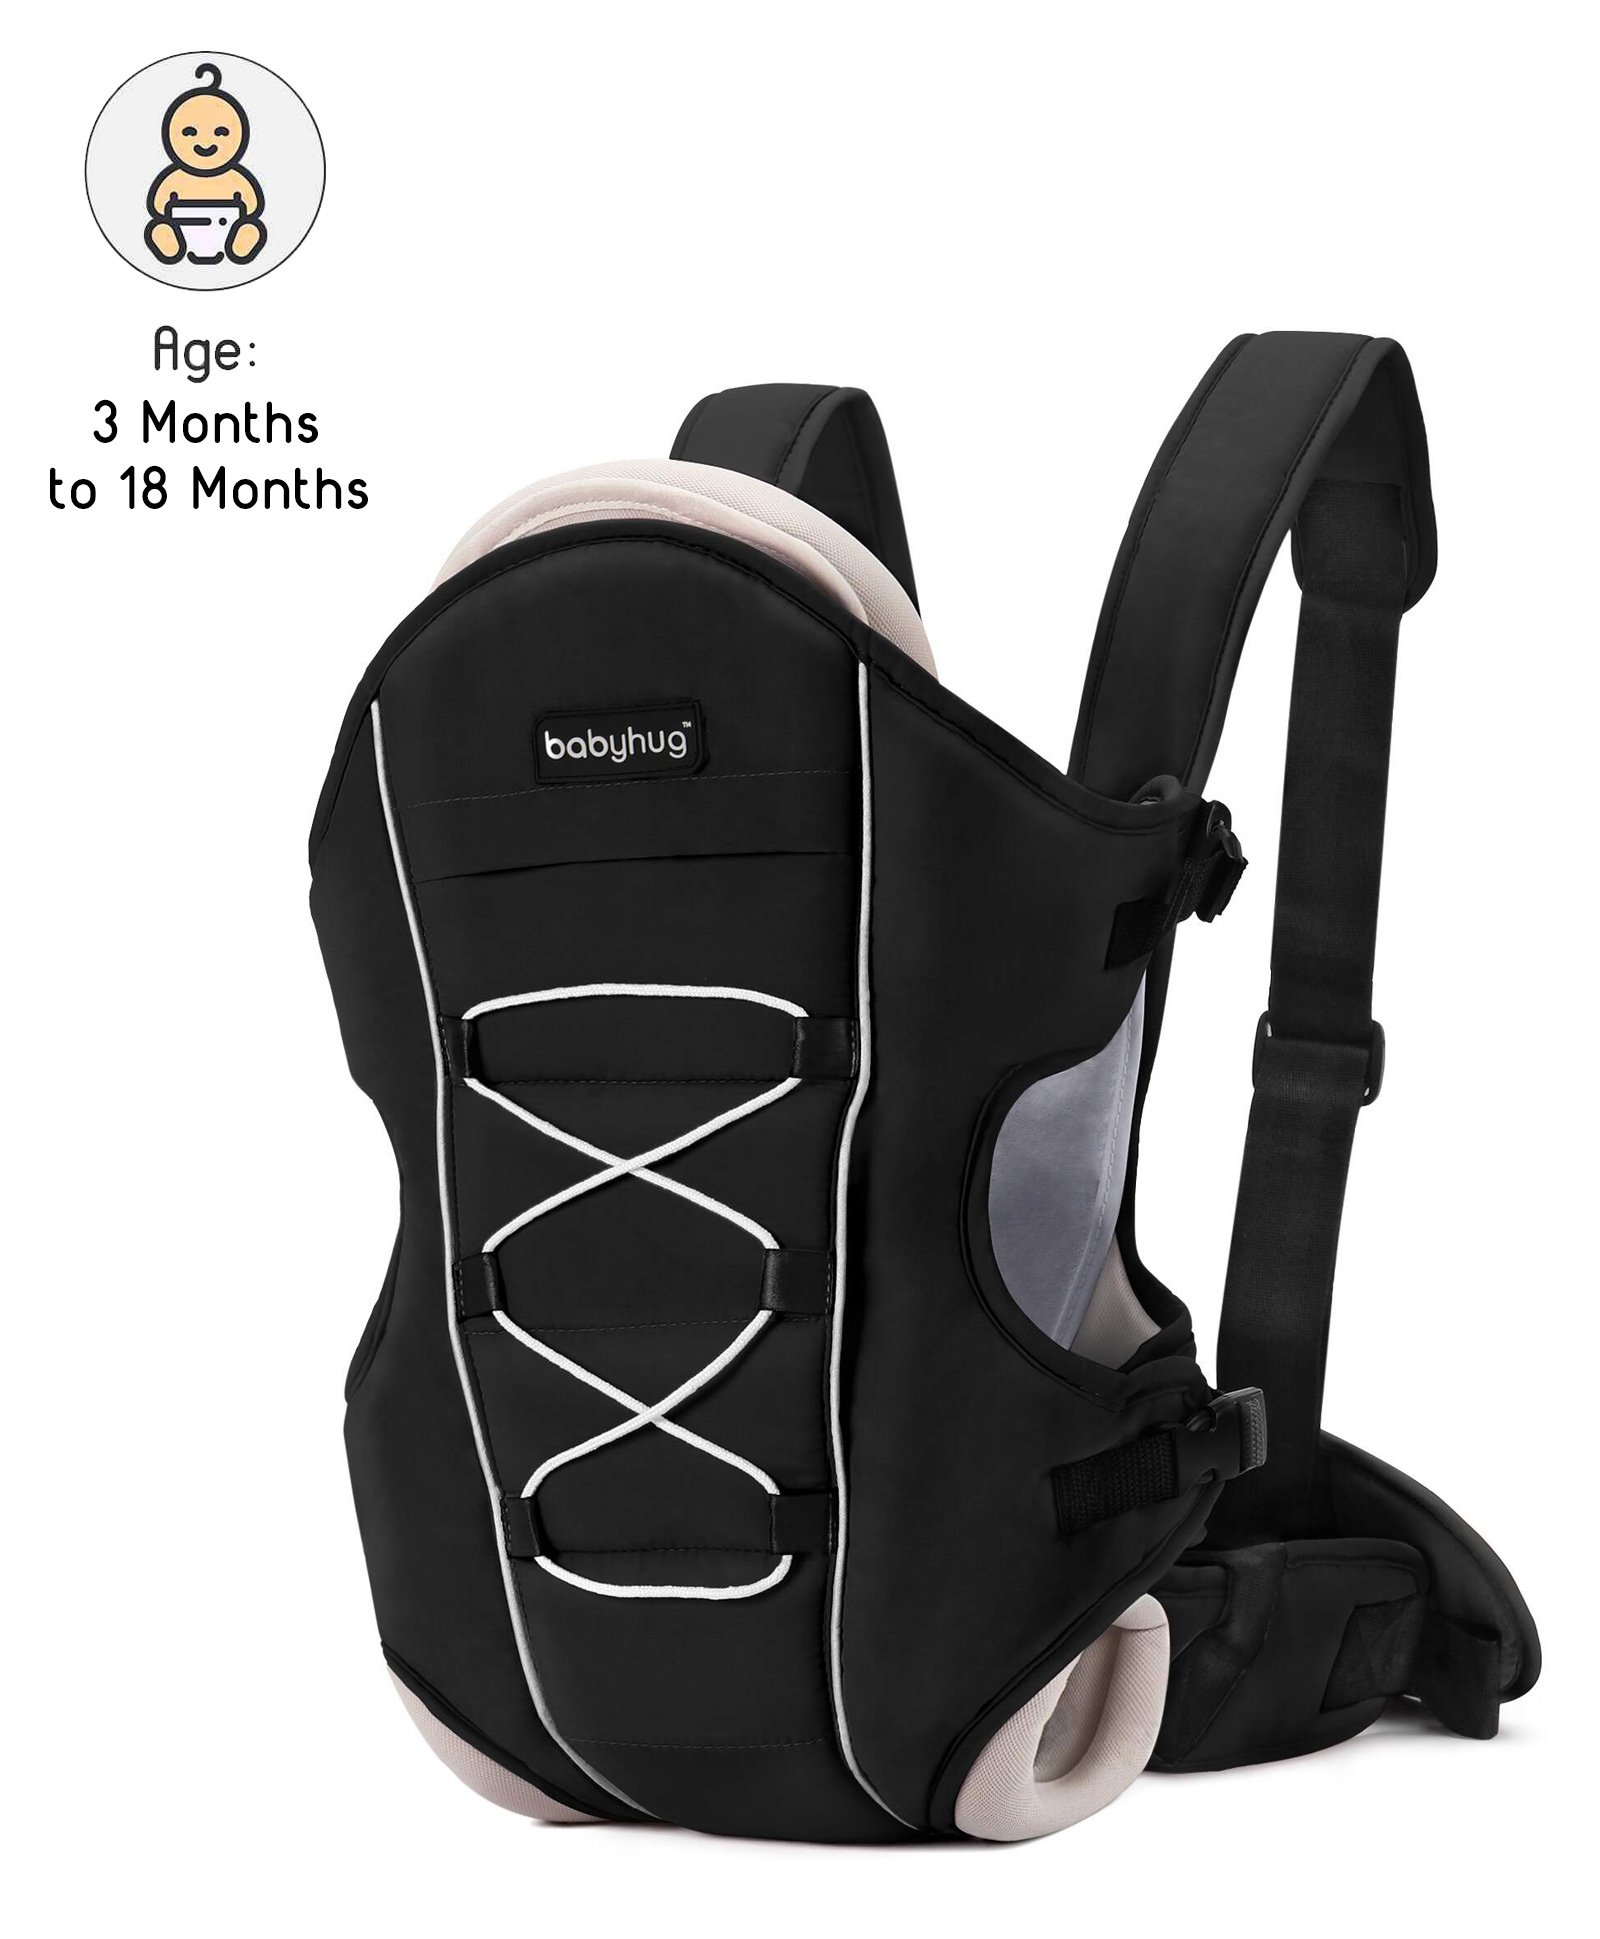 Babyhug Cuddle Up 3 Way Baby Carrier - Black